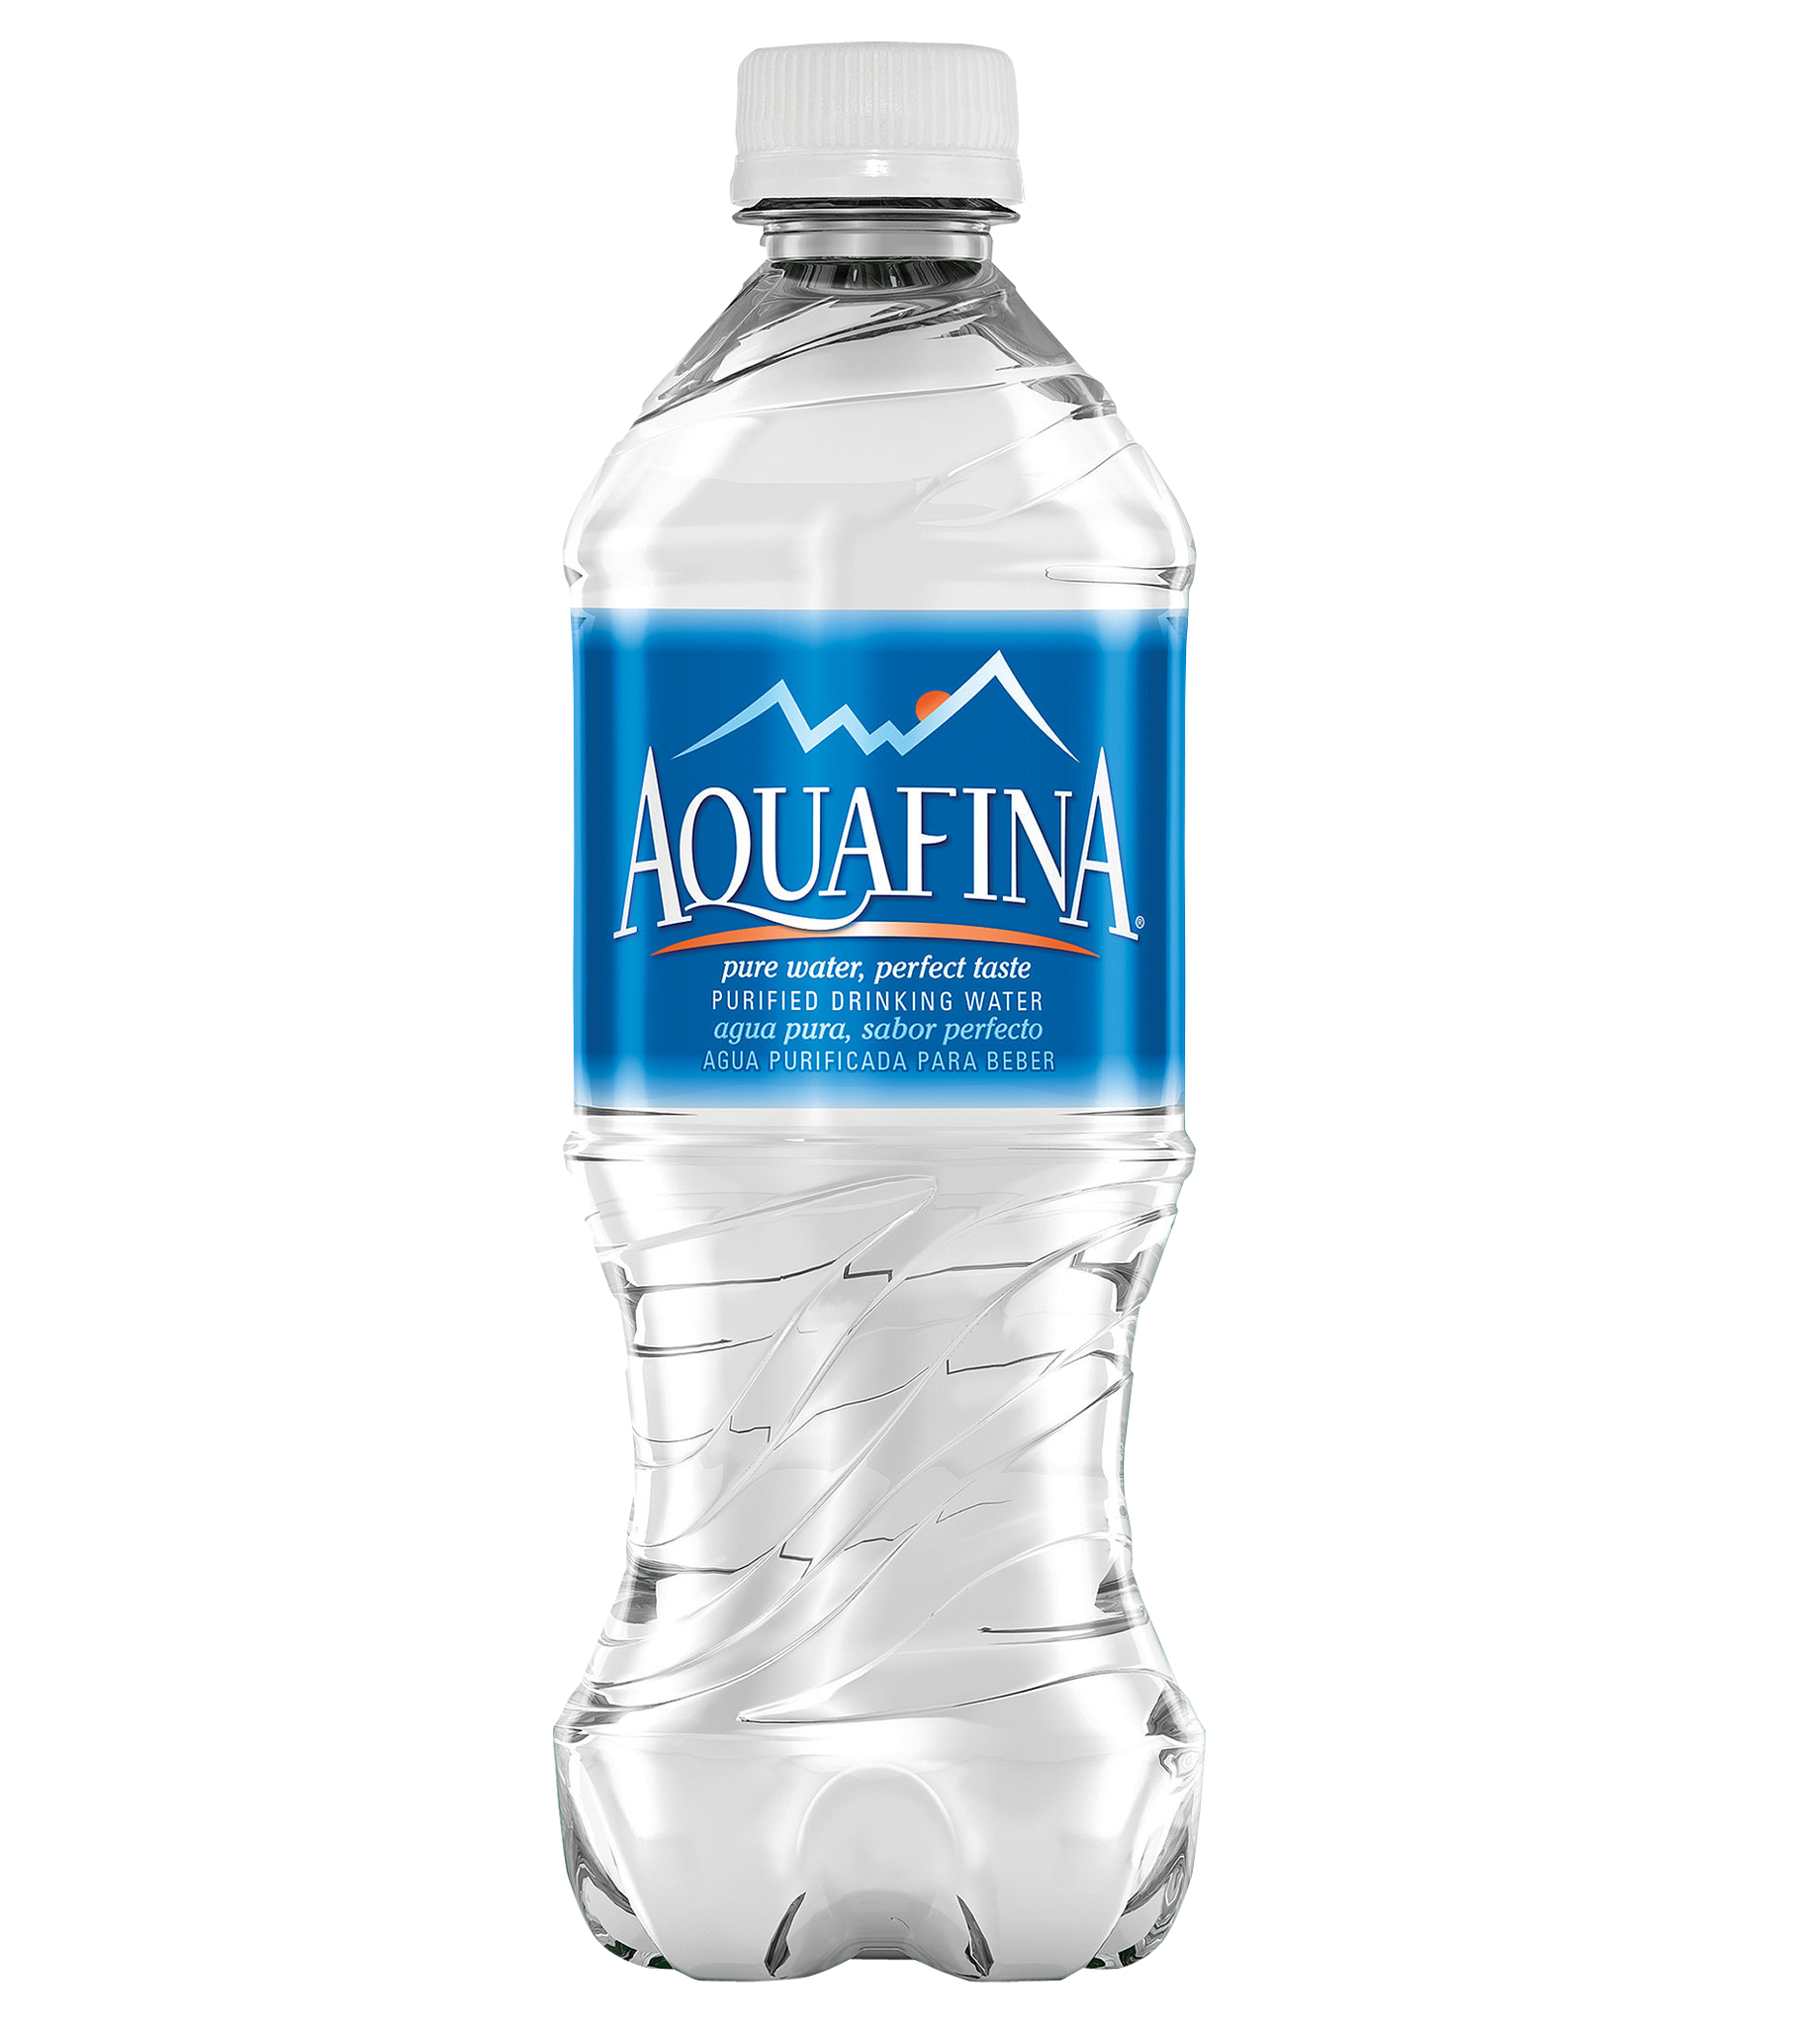 Ice Water Bottle Aquafina PNG Image.